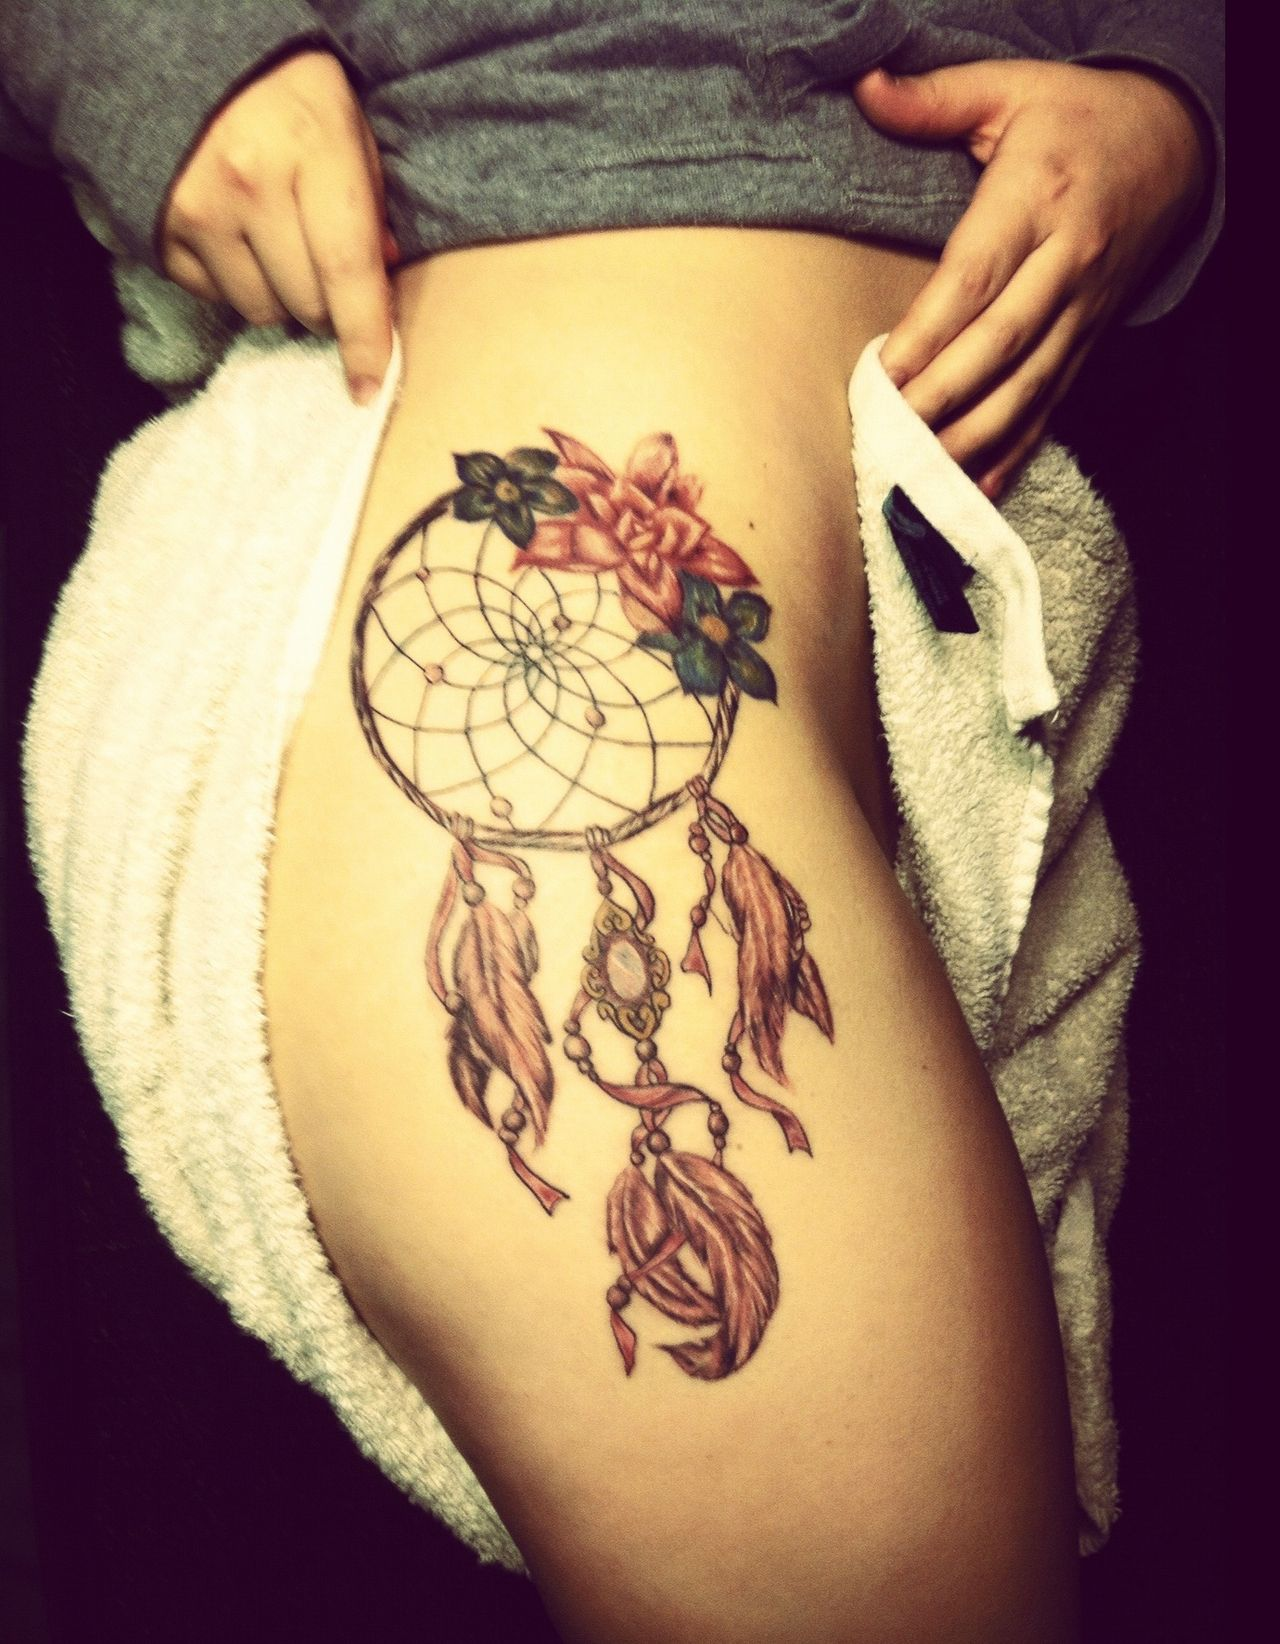 Dream Catcher Tattoo On Thigh Entrancing I Love This Dream Catcher Tattoo I Have One On My Shoulder Think I Design Ideas